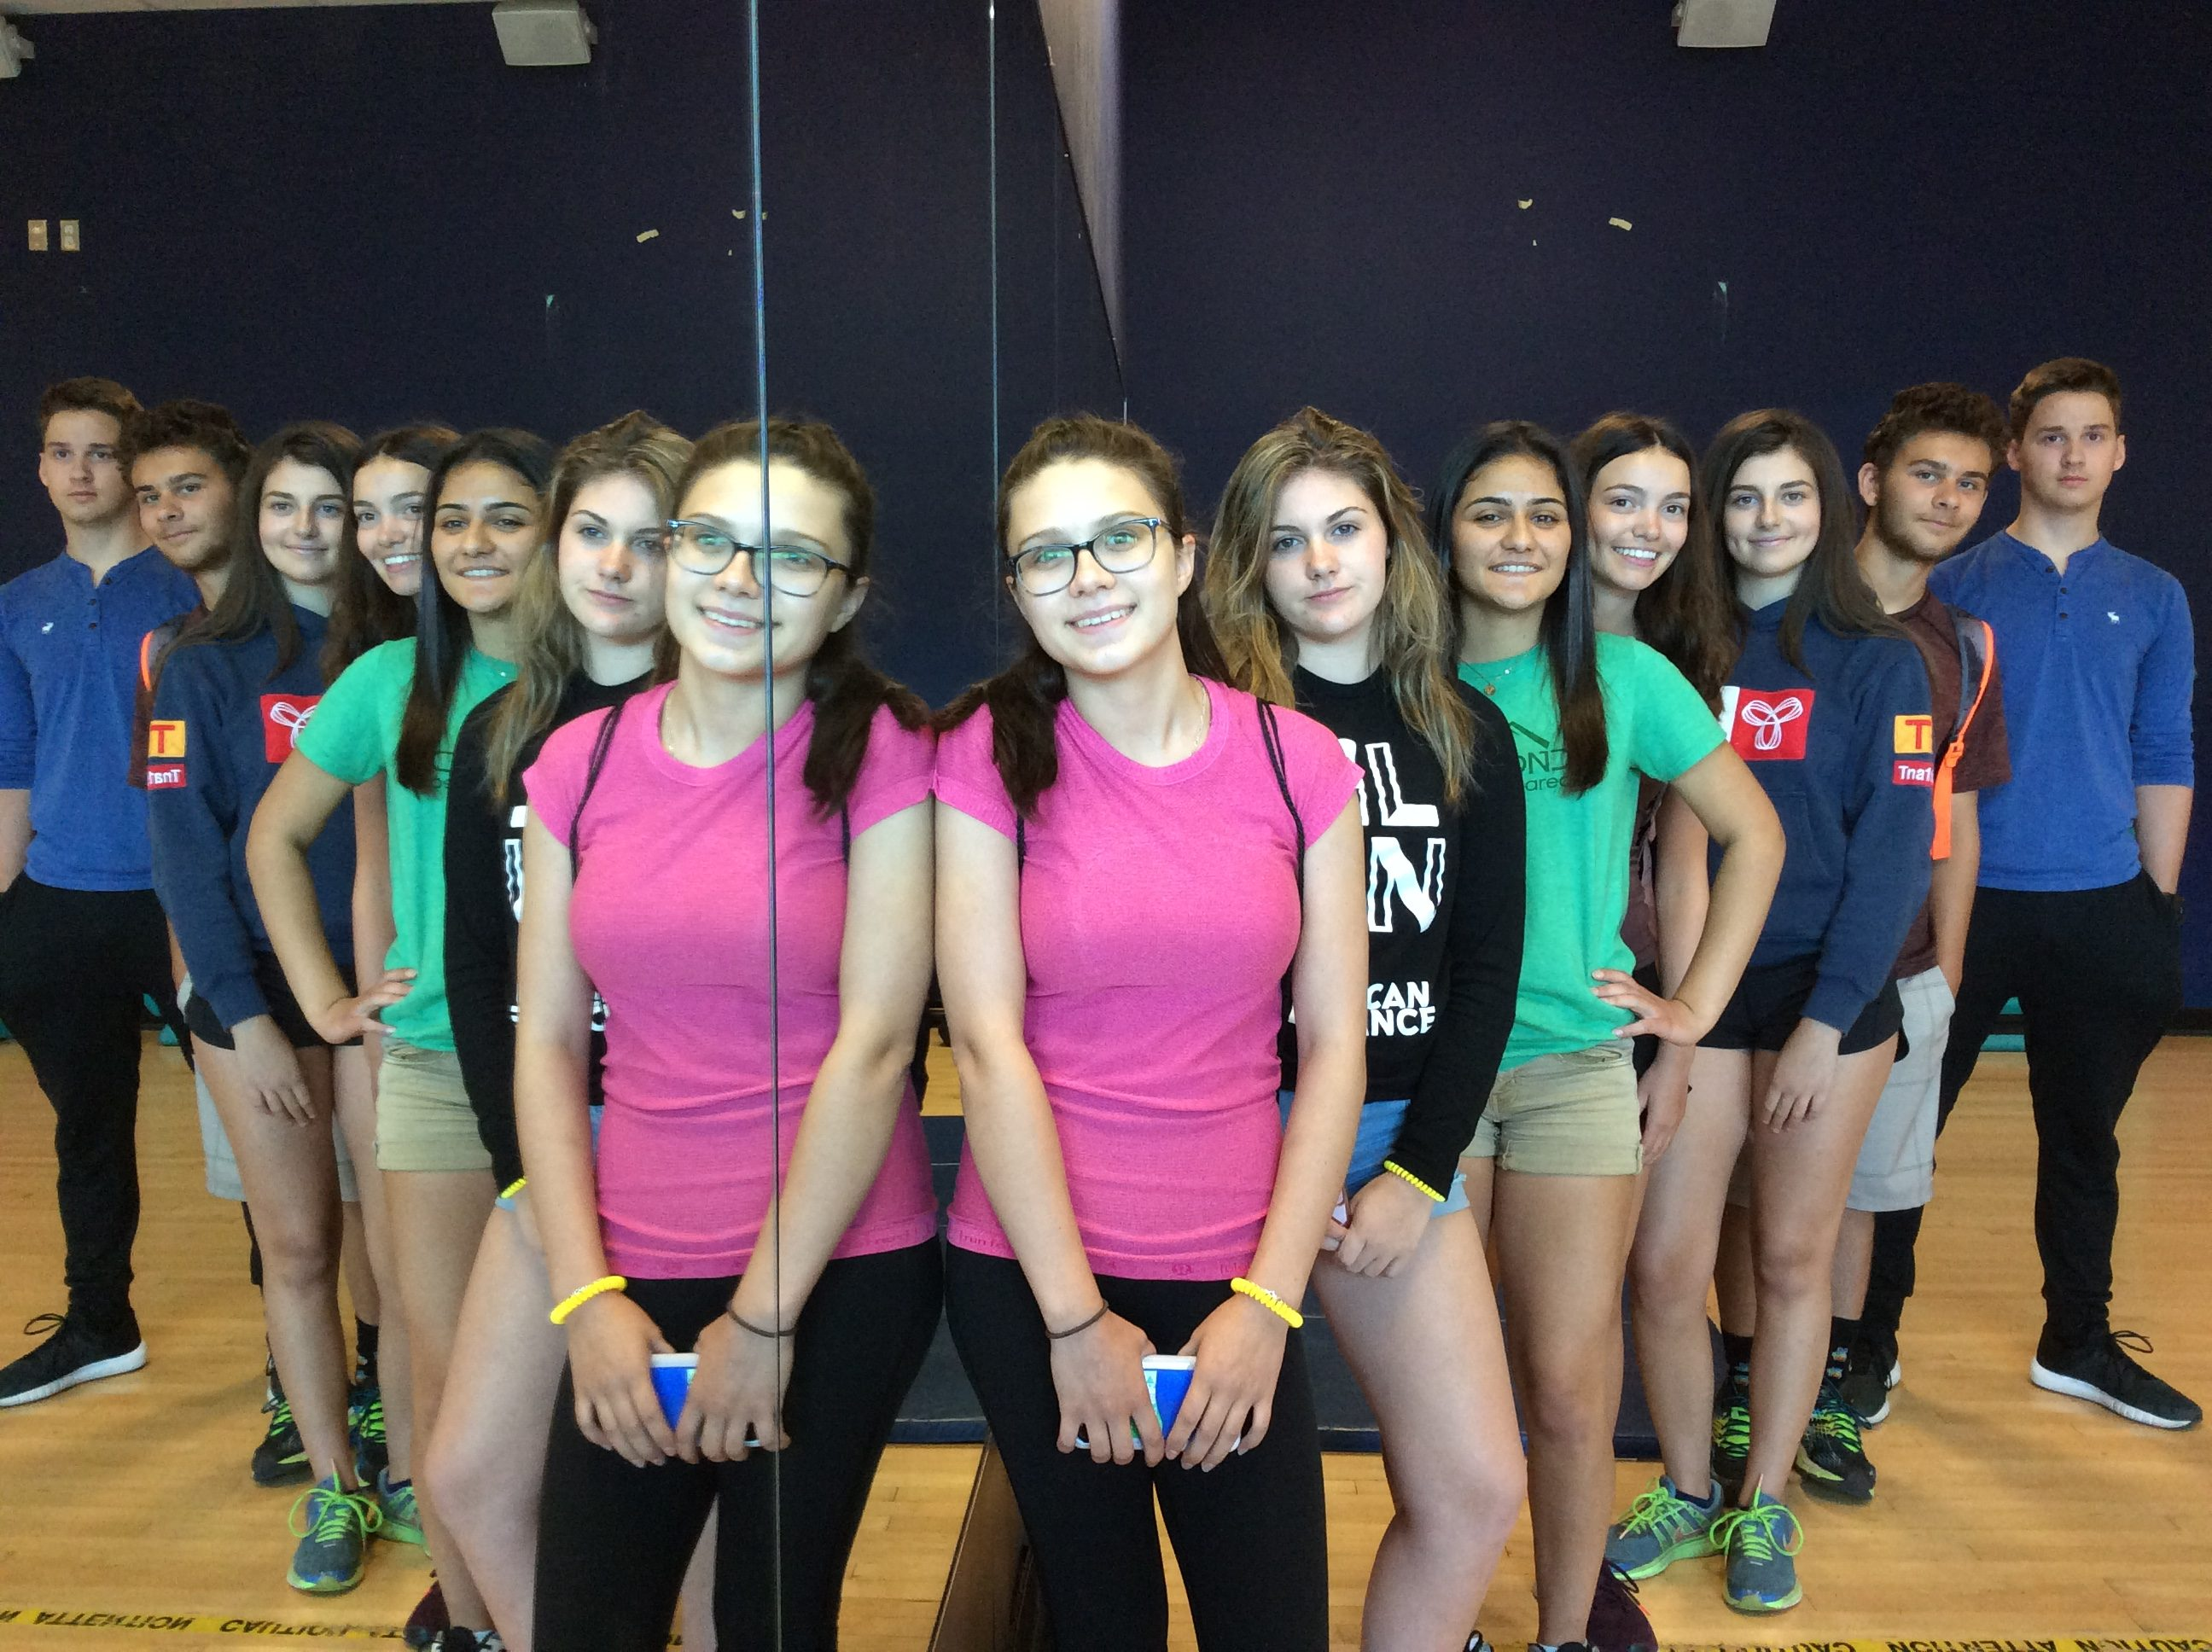 Campers pose in staggered line beside mirror in wellness class; staggered line is reflected in mirror to give illusion of two lines of people